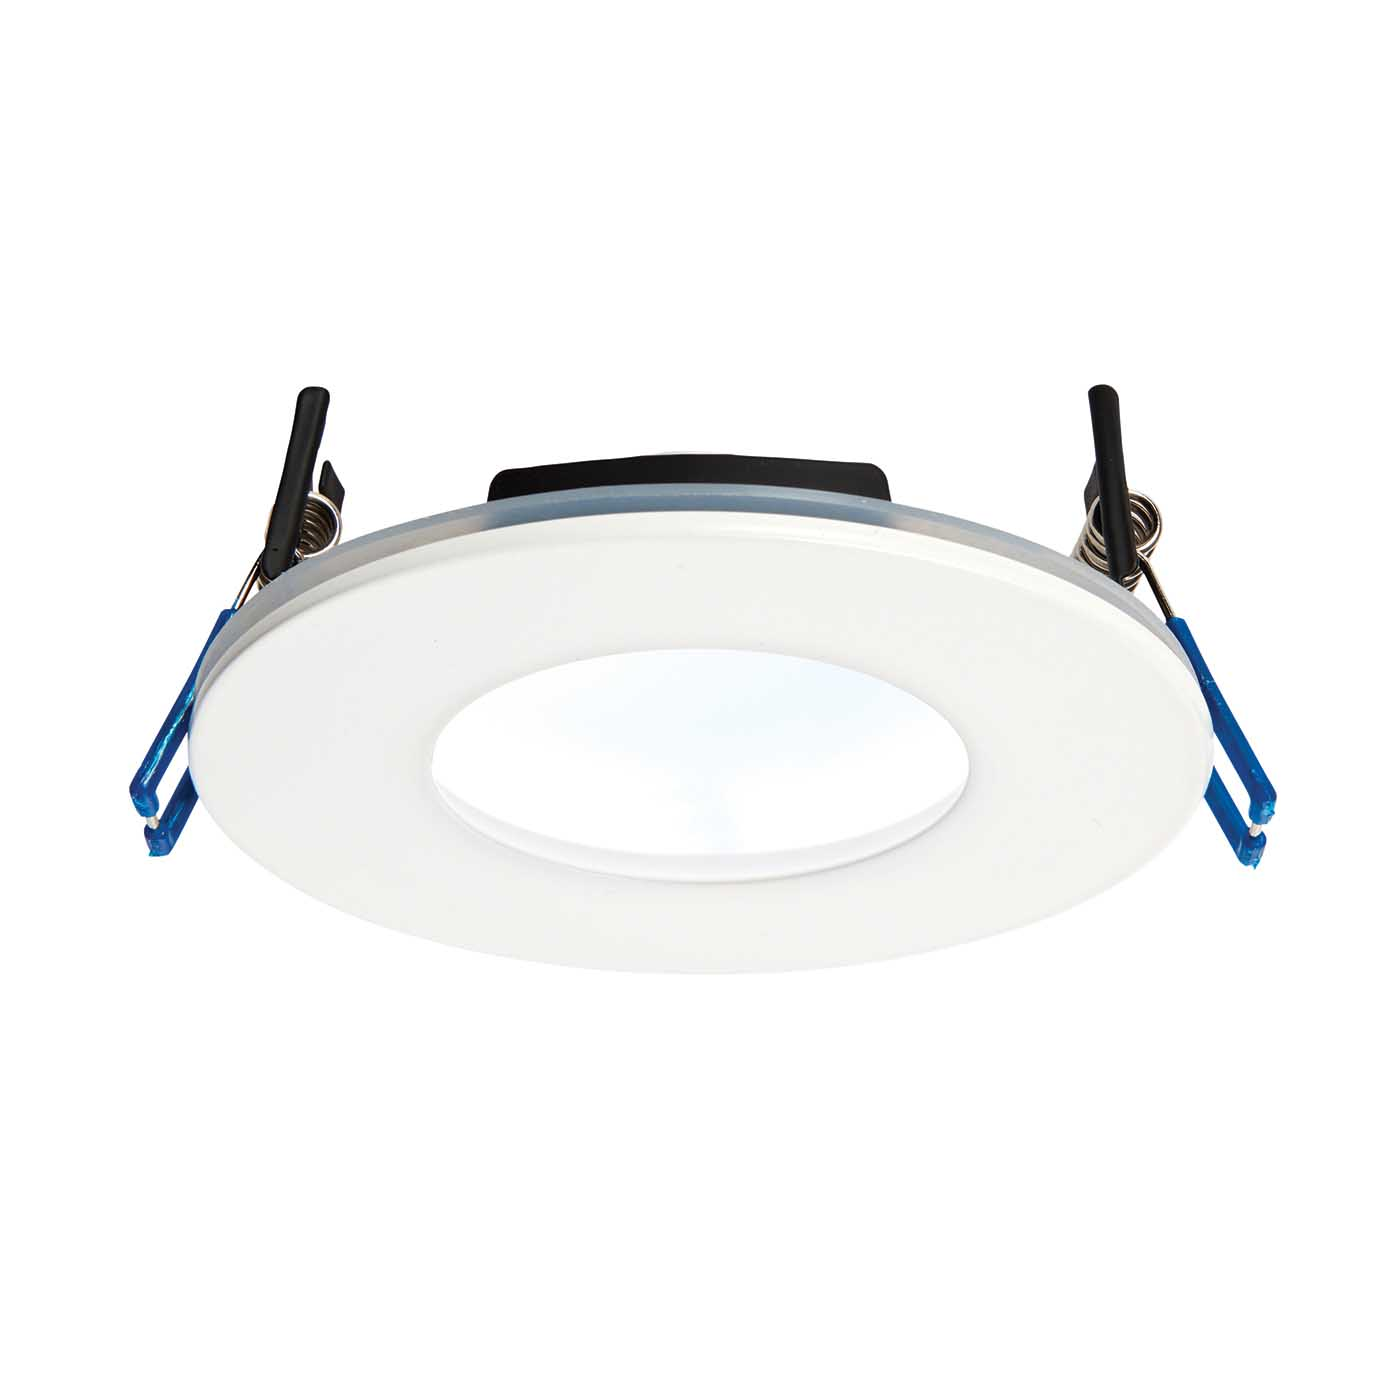 Saxby OrbitalPLUS Bathroom Recessed Fixed Light IP65 9W LED -SMD 2835 Cool White Thumbnail 1